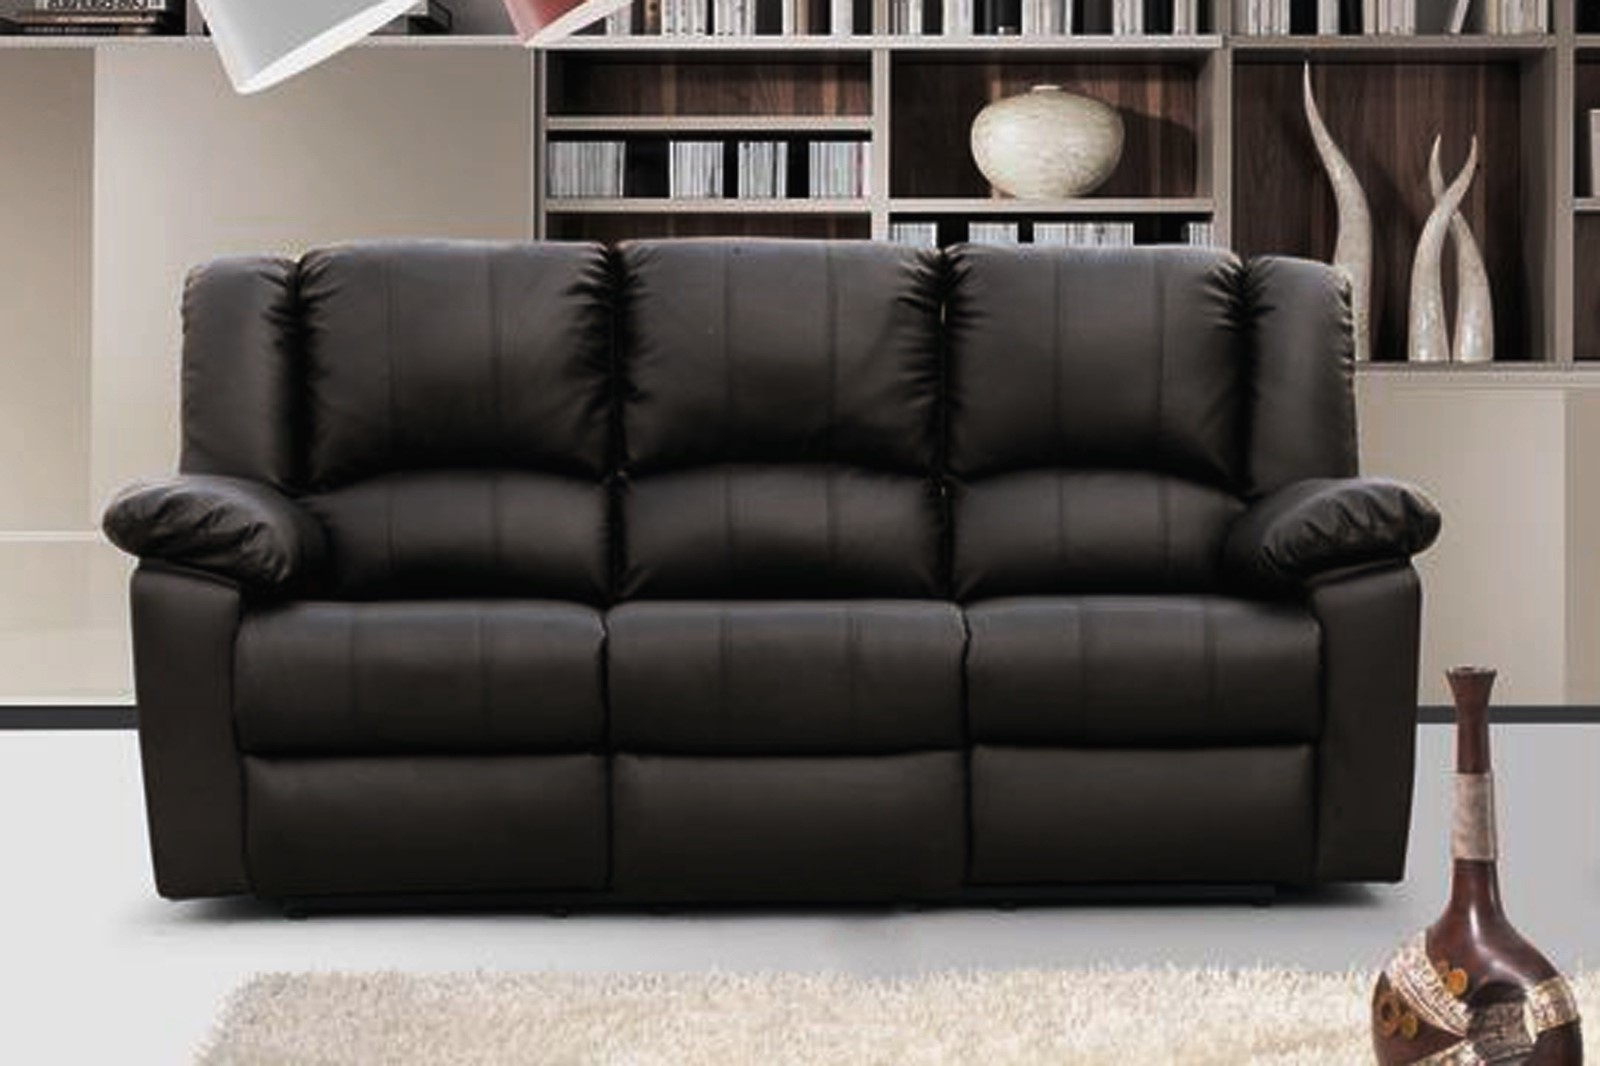 Trendy 3 Seater Leather Sofas With Sofa : Creative 3 Seater Leather Sofa Recliner Excellent Home (View 18 of 20)